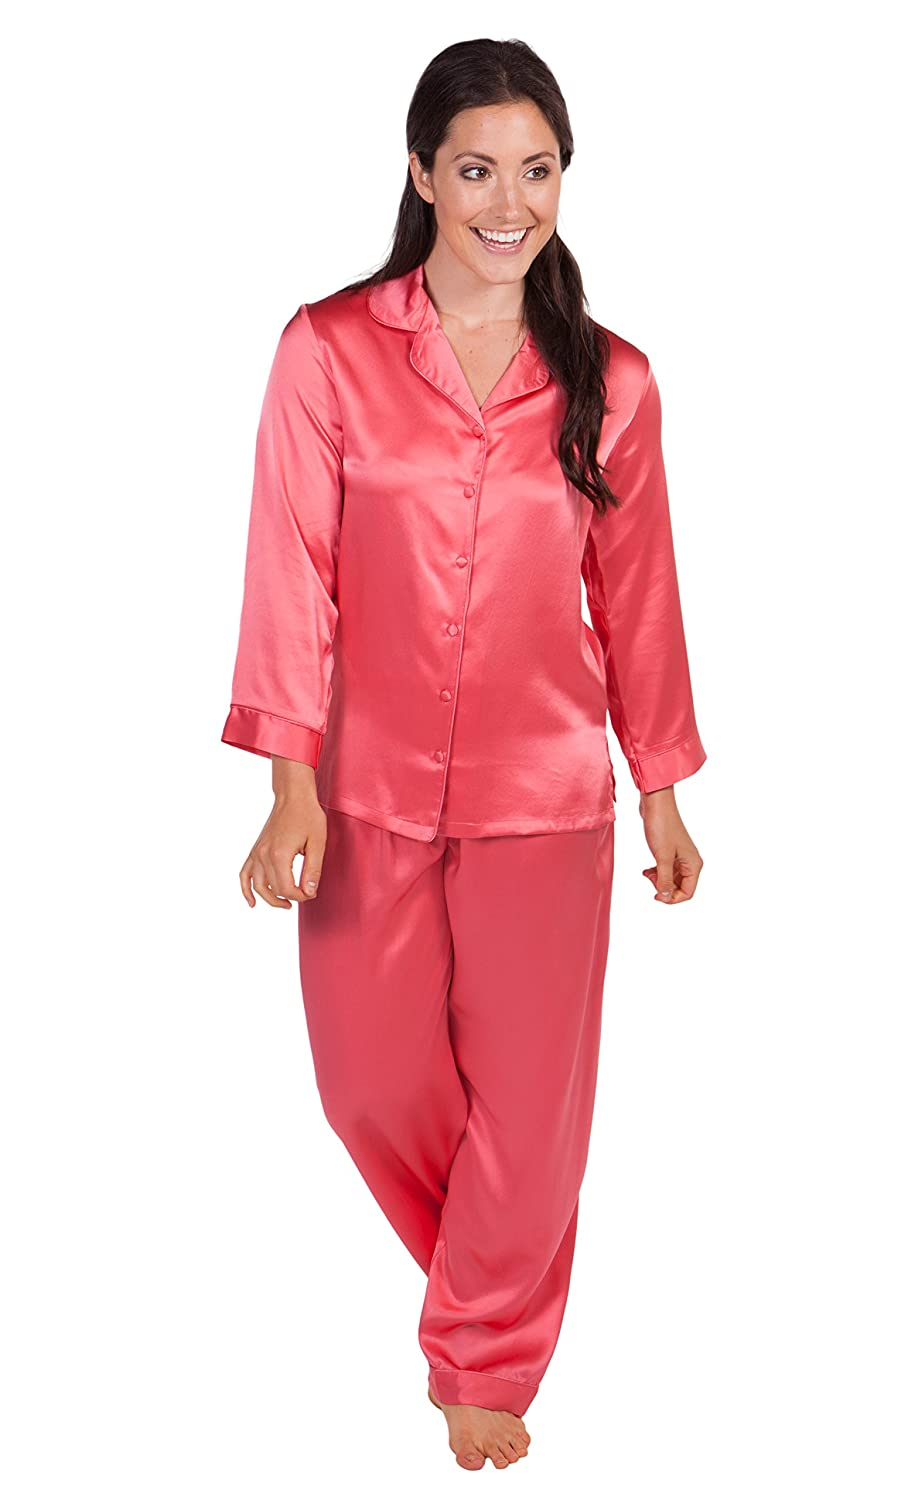 A man's pajamas should be warm, comfortable, and express a casual sense of style. The Robes King Classical Sleepwear Broadcloth Woven Pajamas are our top pick because they come in myriad print.